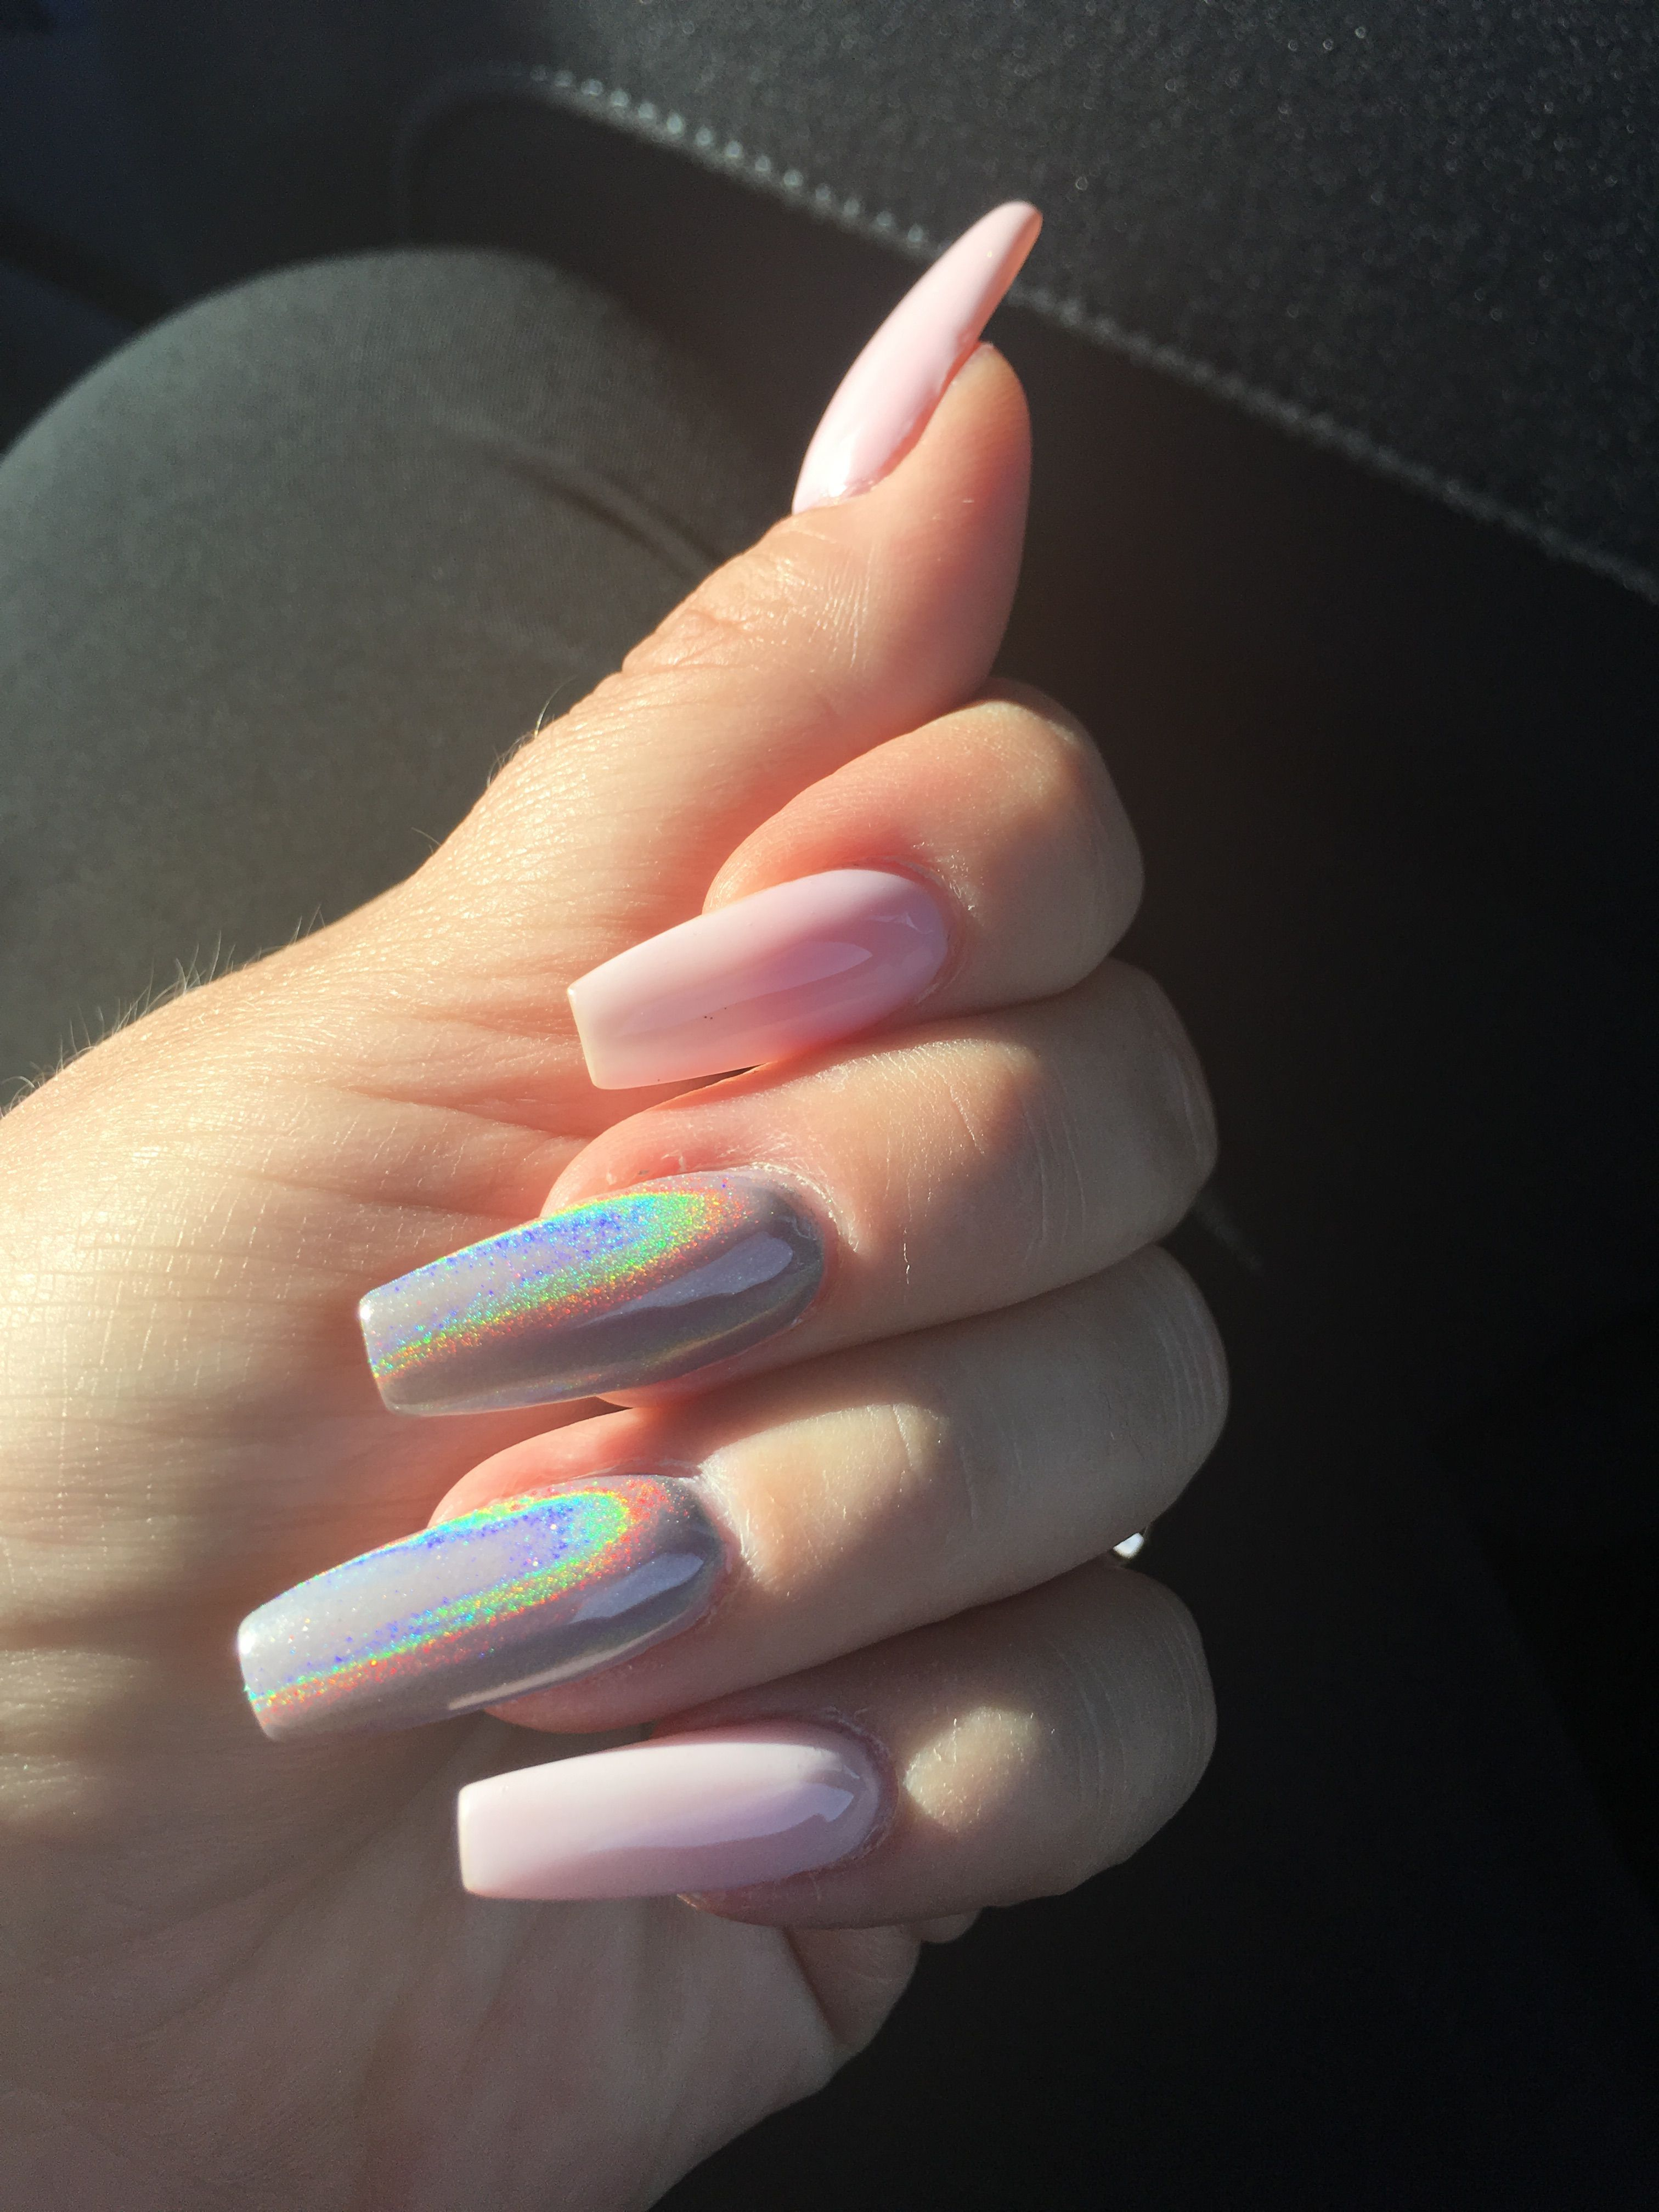 Hologram Unicorn Nails Nails Beautiful Nailsideas Acrylicnails Gel Nails Holographic Nails Gorgeous Nails